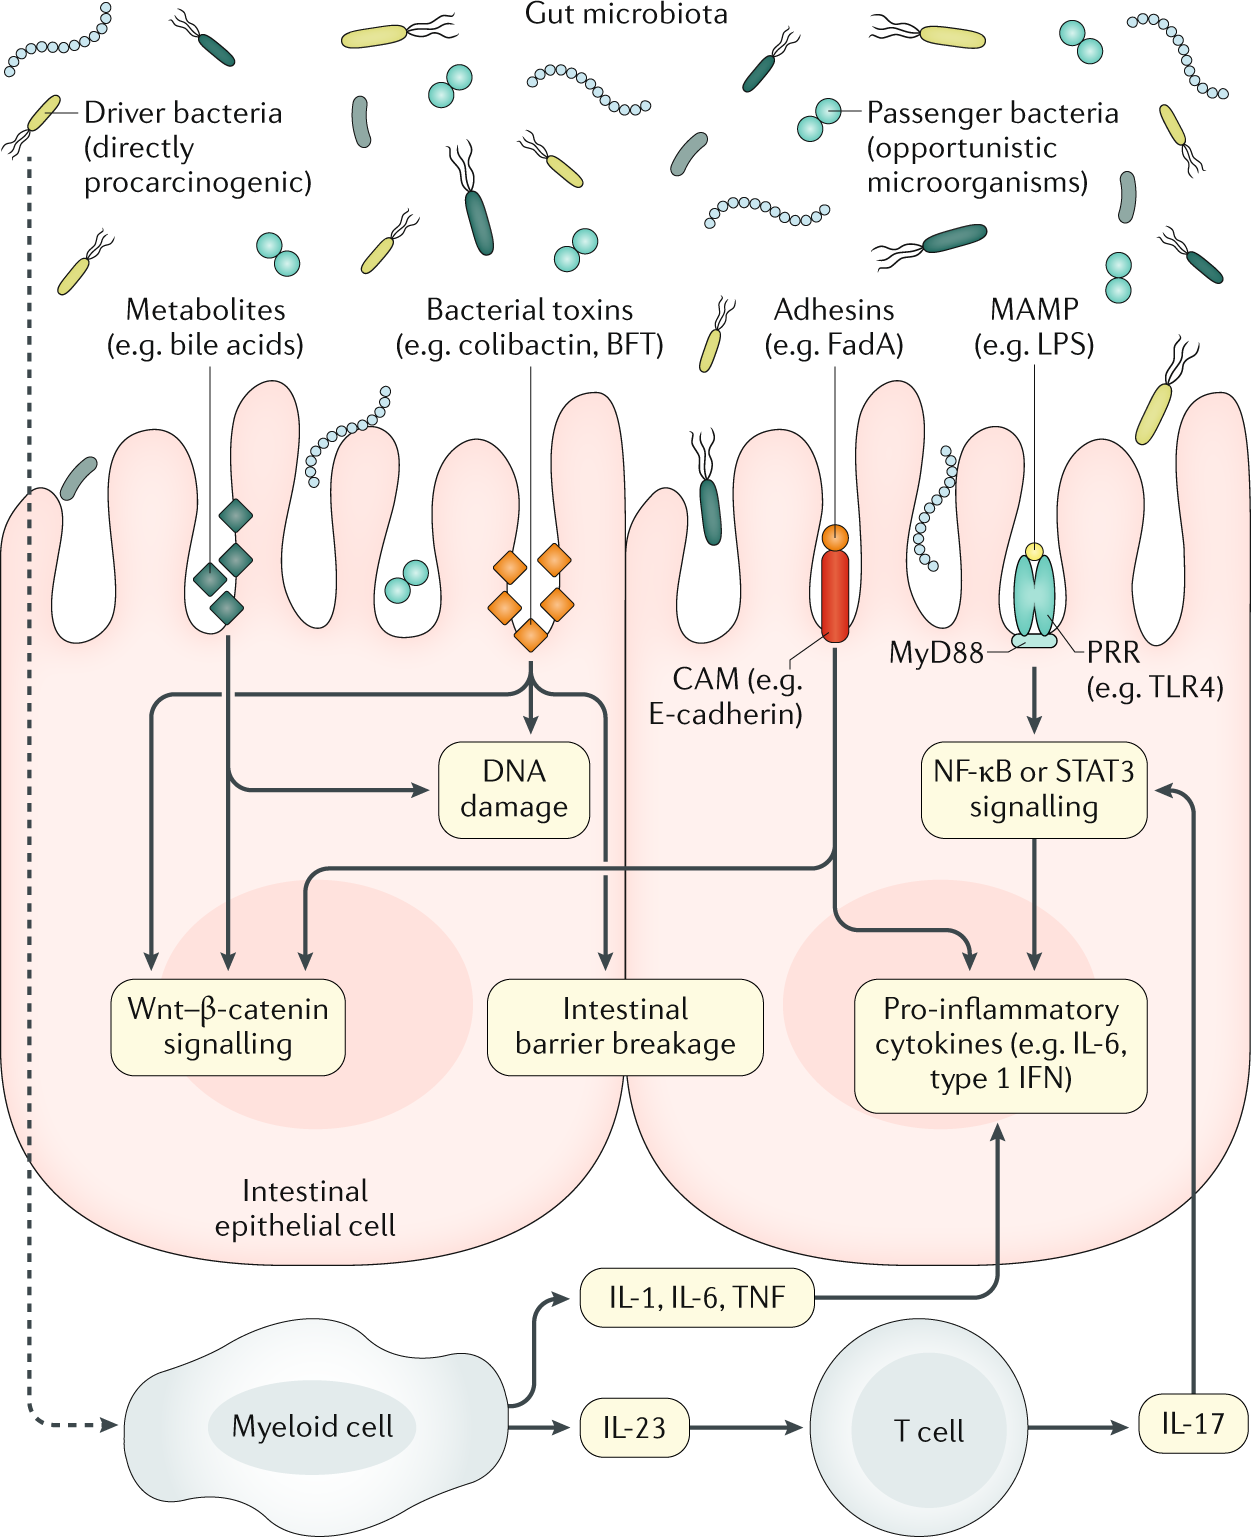 Gut microbiota in colorectal cancer: mechanisms of action and clinical